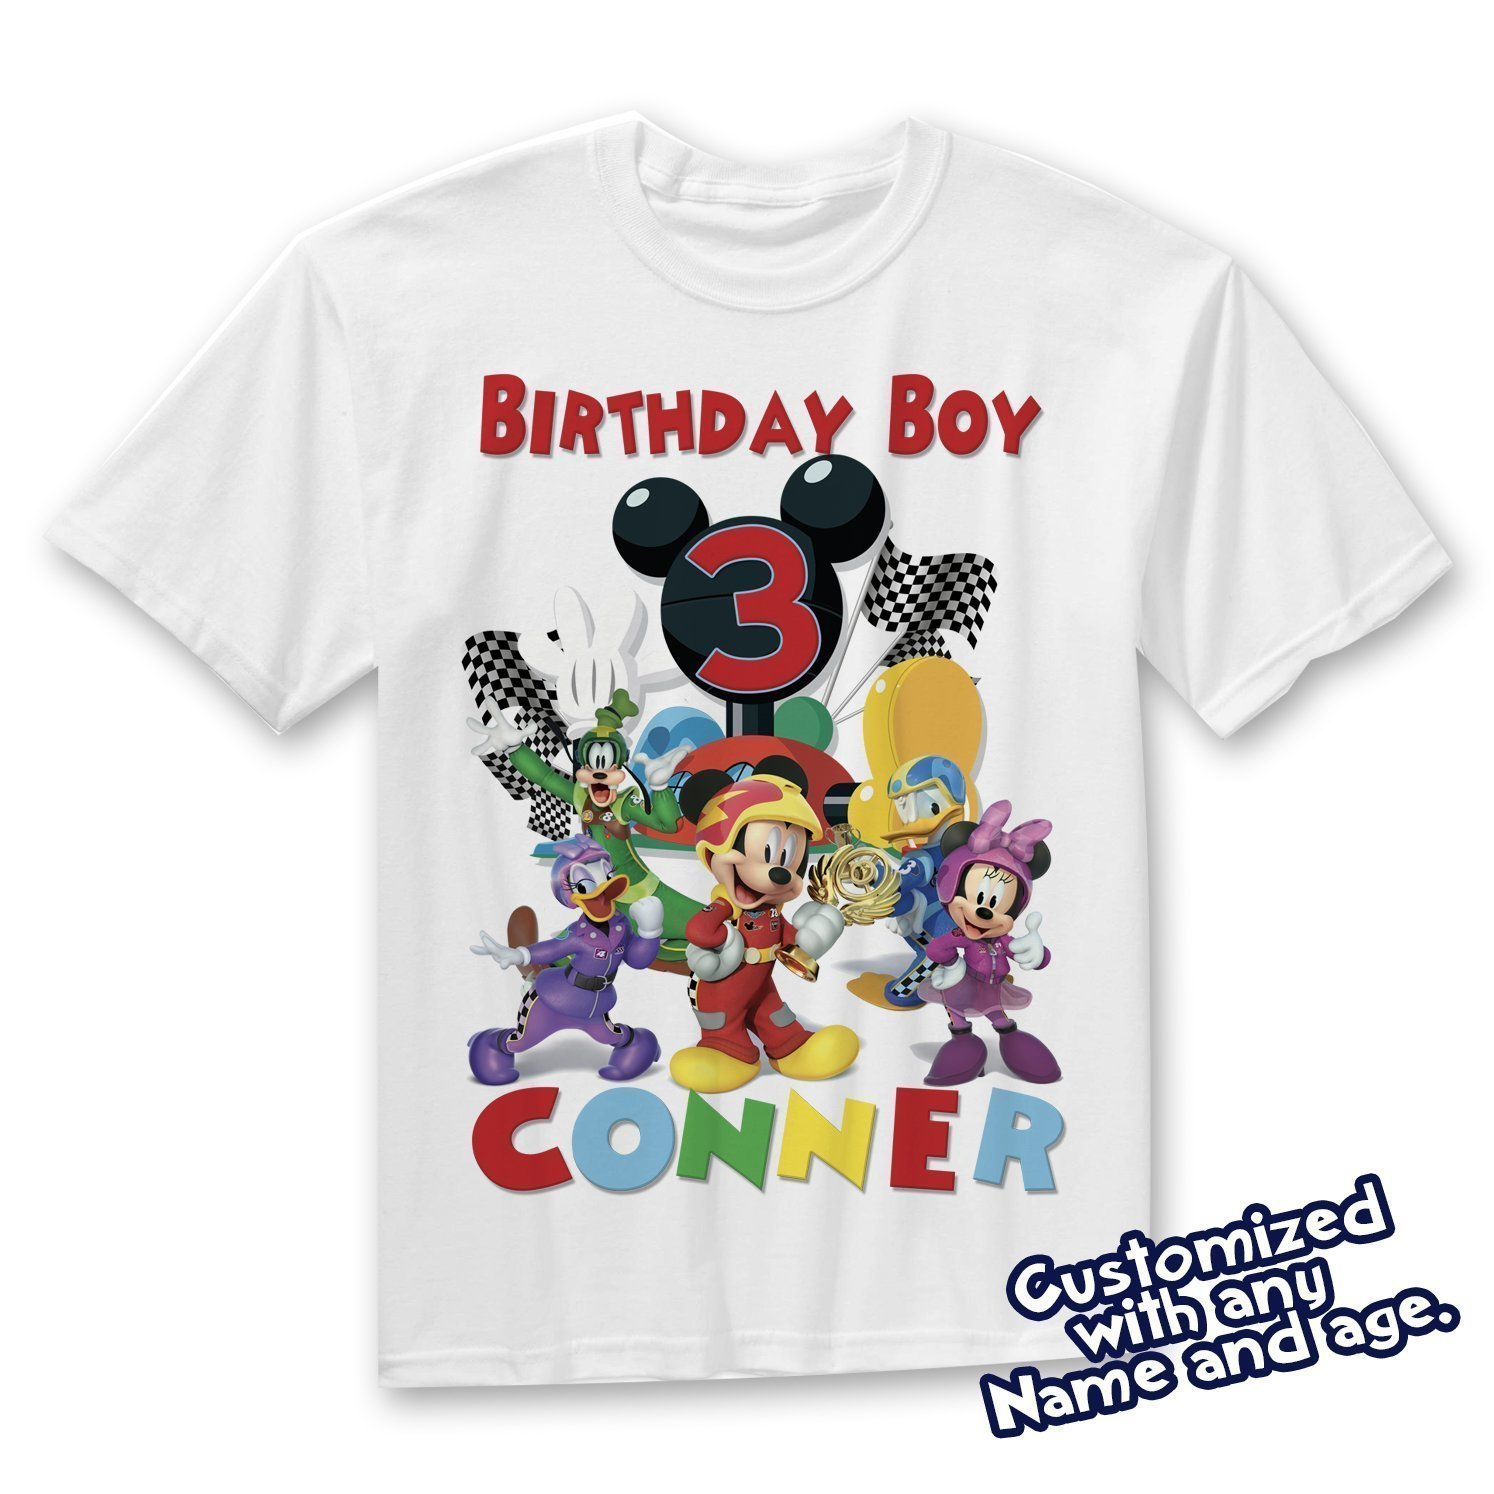 Mickey Roadster Racers Birthday Shirt, Shirt Personalized With Name and Age - Mickey Racing Birthday Shirt